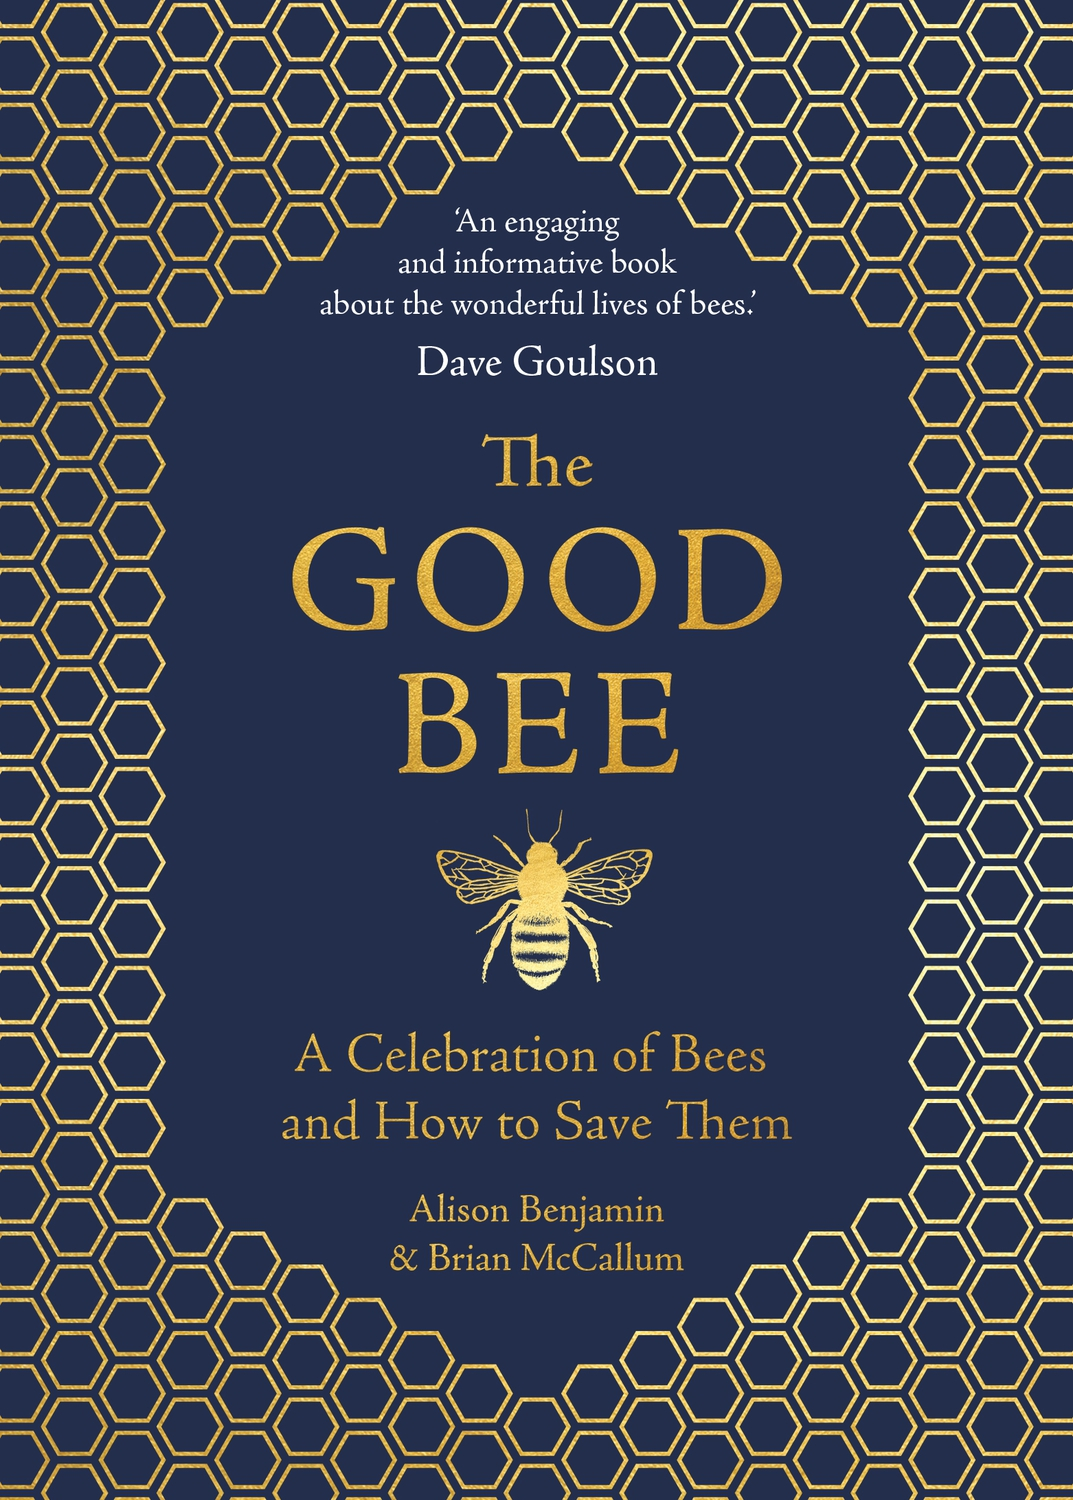 The Good Bee